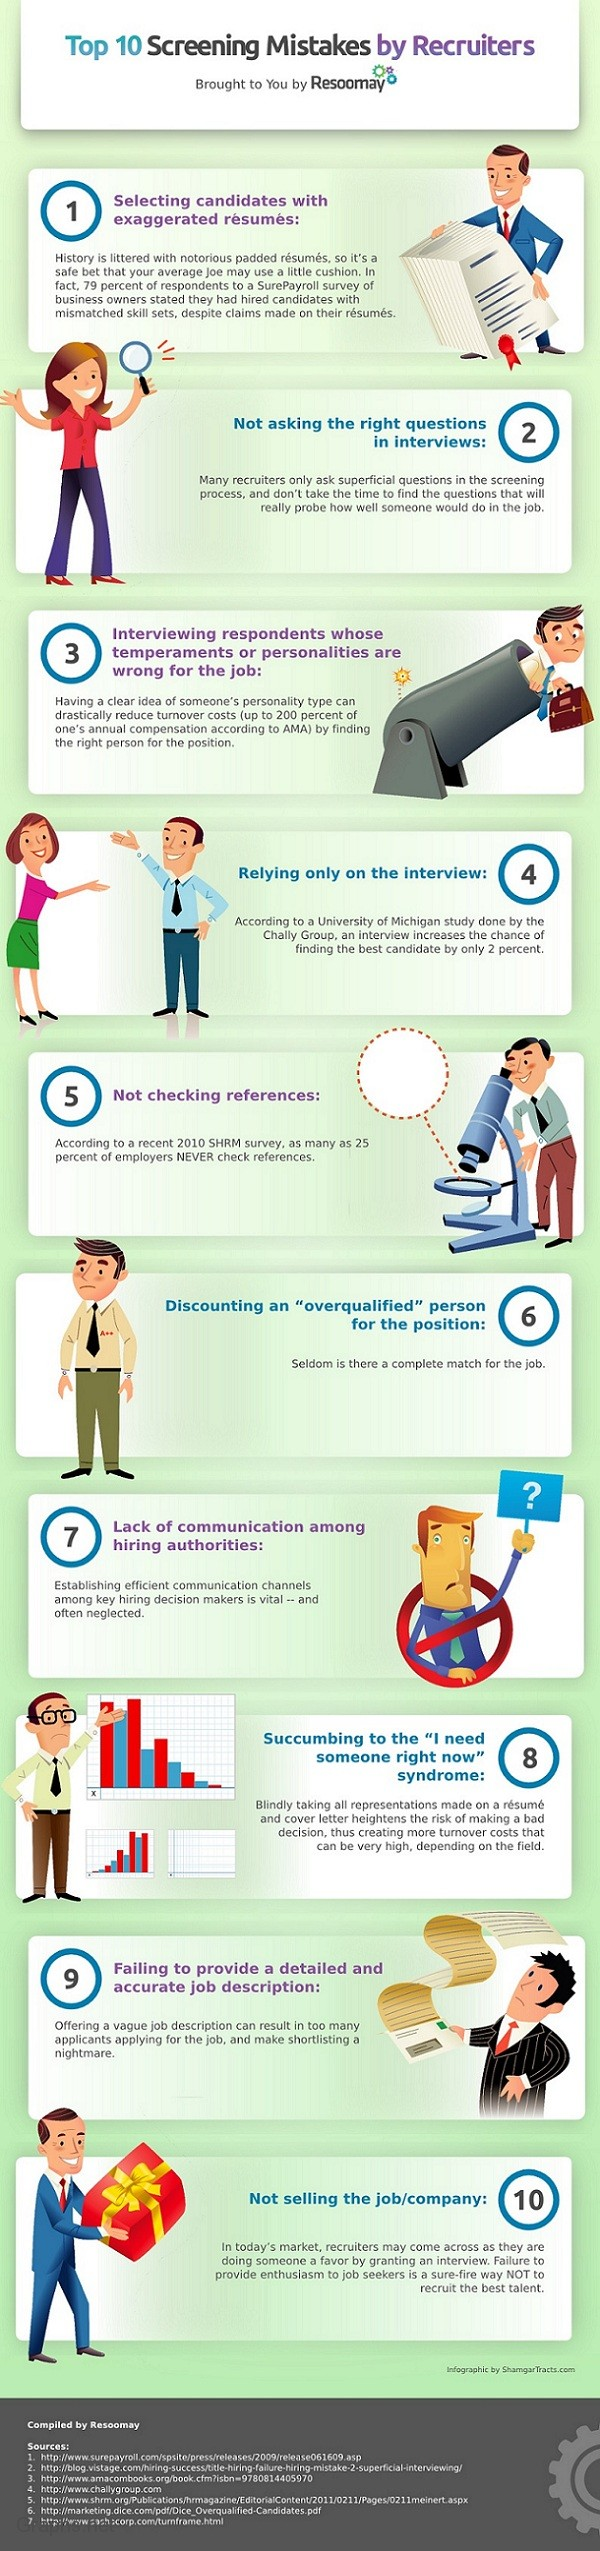 10 Common Mistakes Made By Recruiters